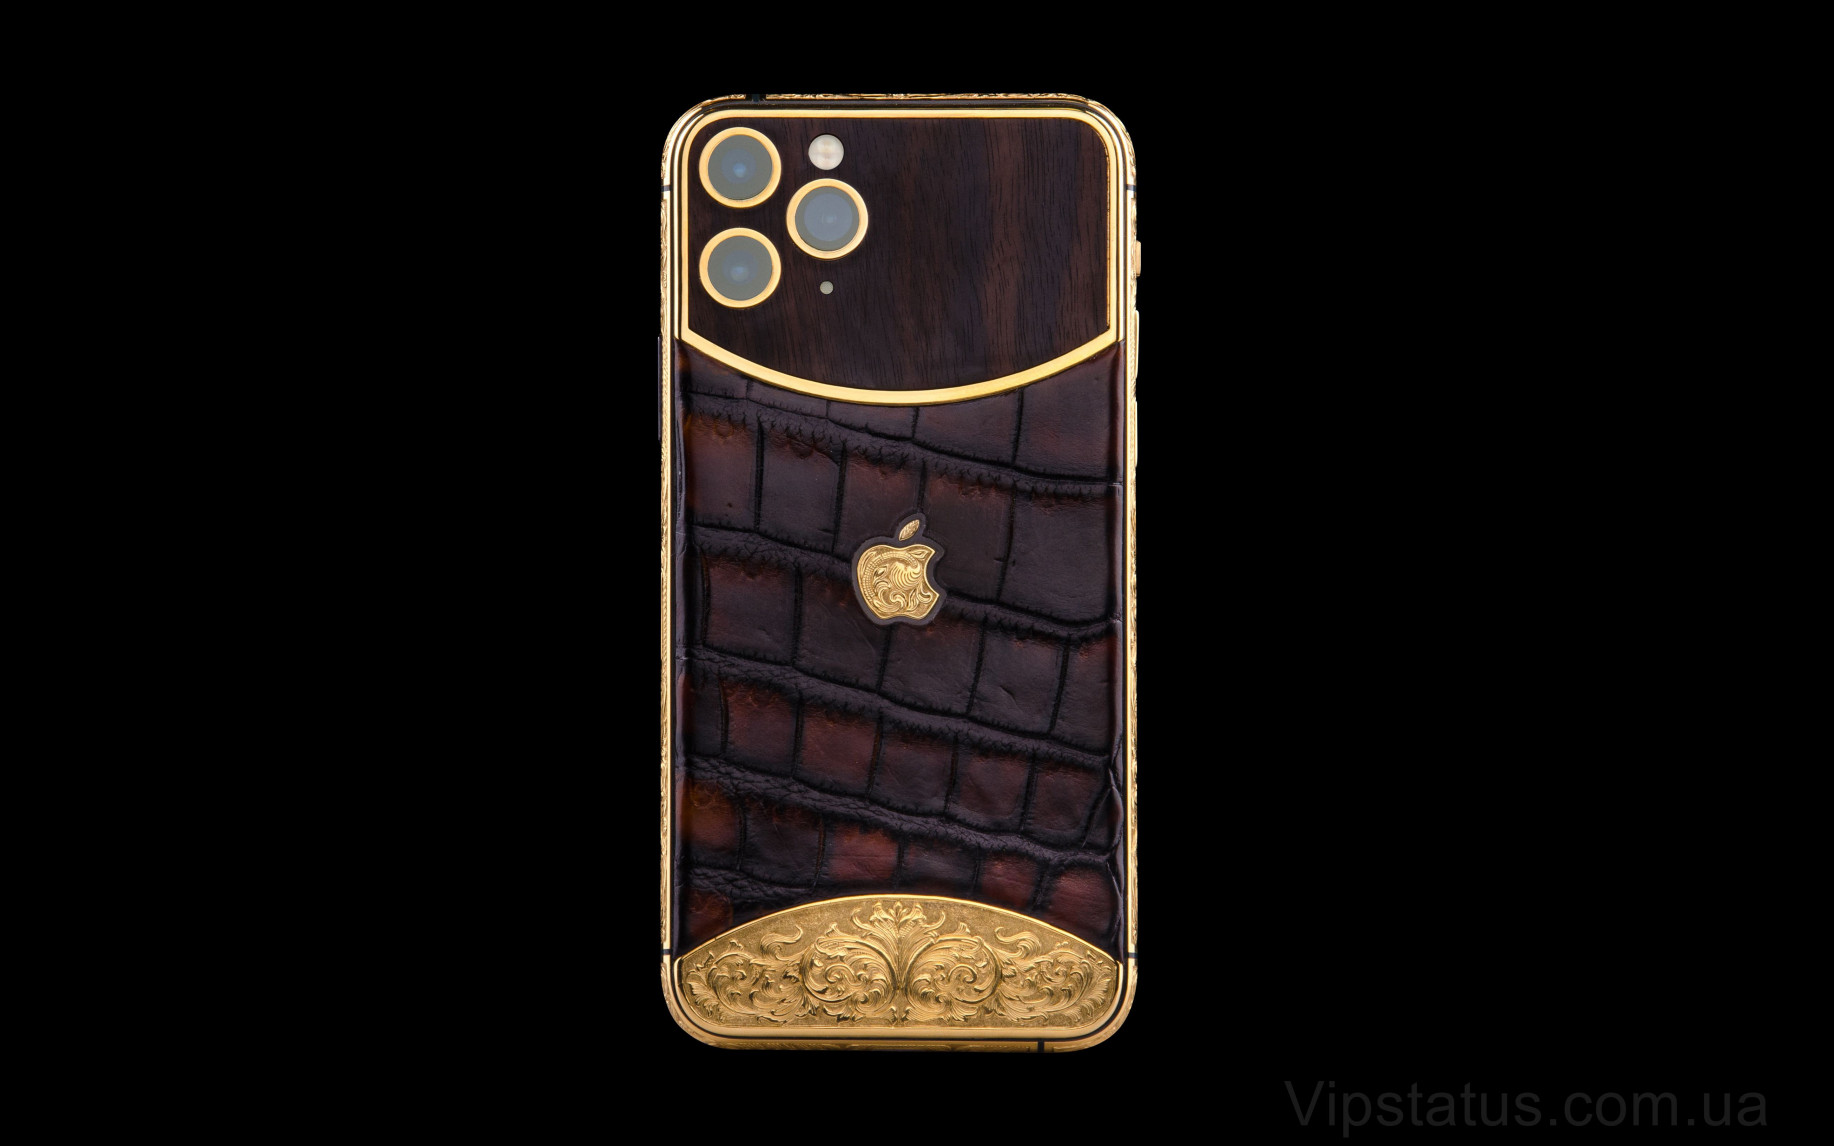 Elite Brown Edition IPHONE XS 512 GB Brown Edition IPHONE XS 512 GB image 4